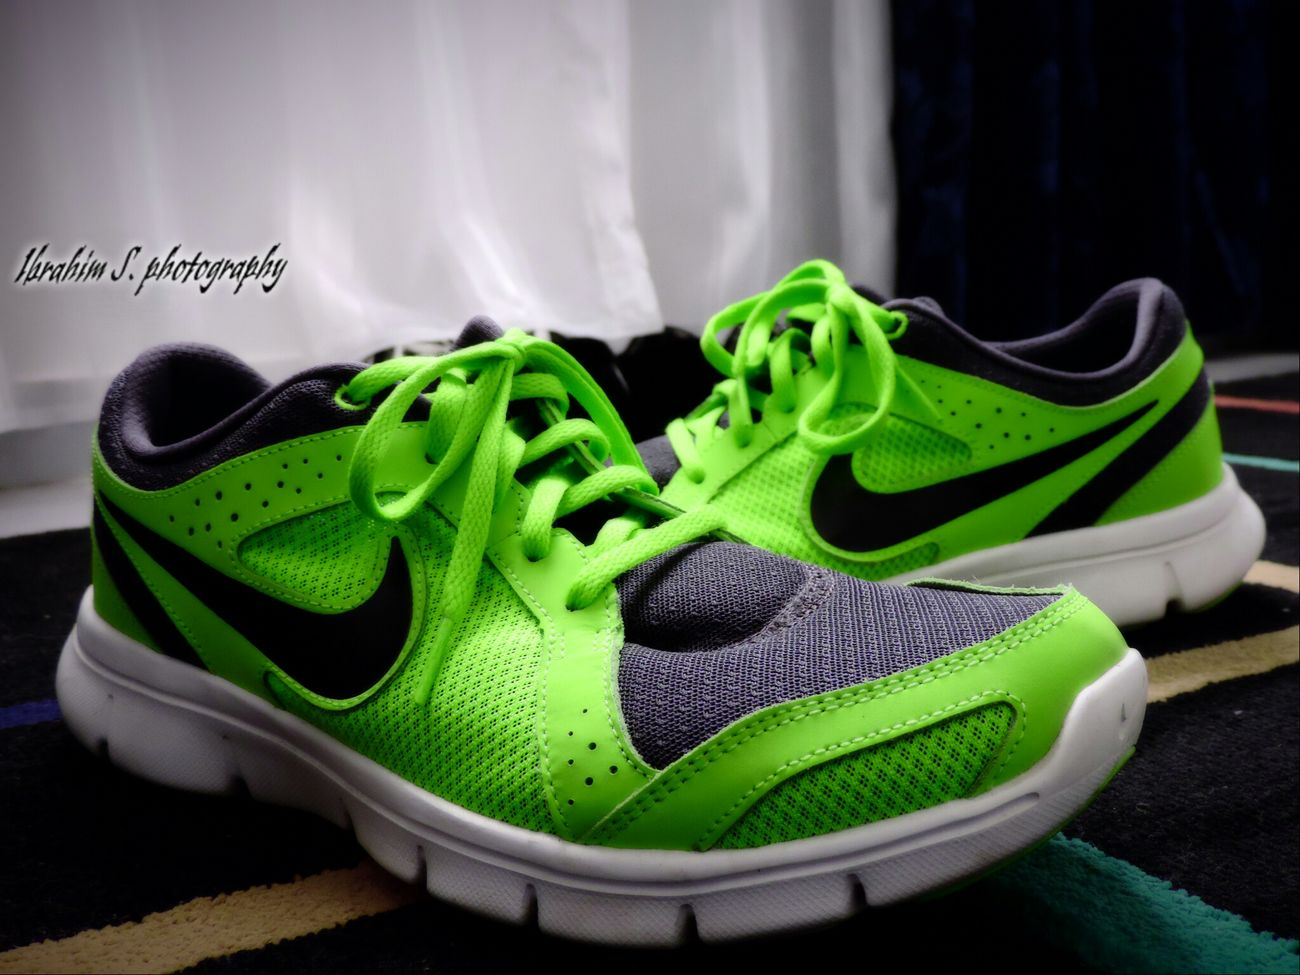 My nike shoes coz i'm bored. Nike Shoes Nike Bored Training Shoes Ibrahim S Photography